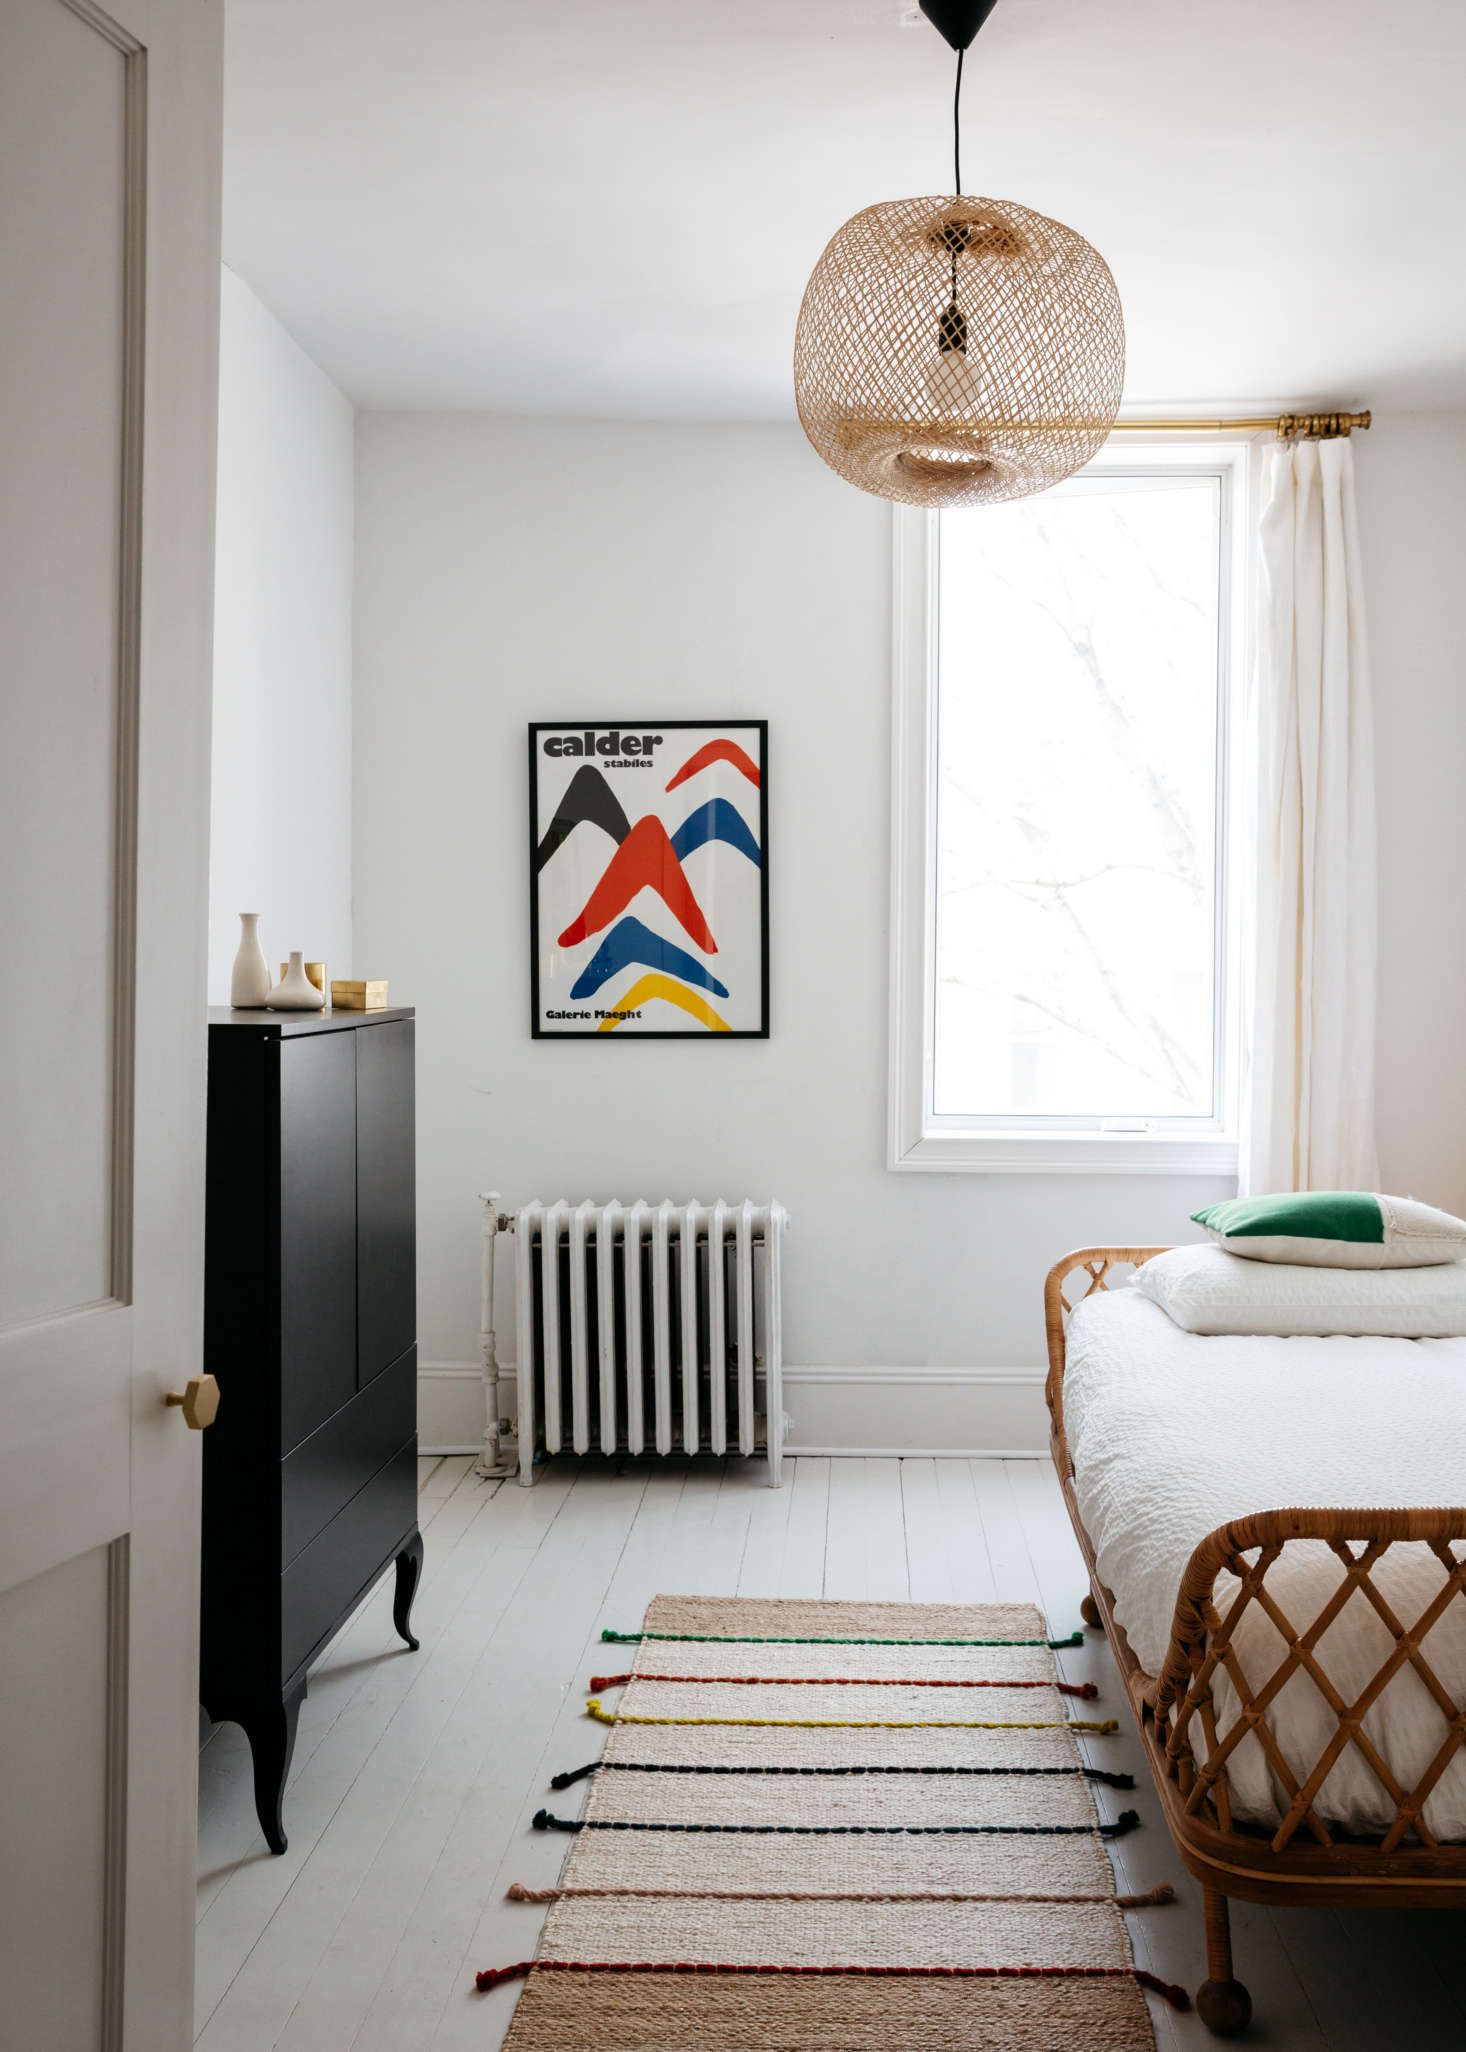 Photograph byBrian Ferryfor Remodelista; styling byAlexa HotzfromBefore & After: A French-Inflected Townhouse Renovation in Williamsburg, Brooklyn.